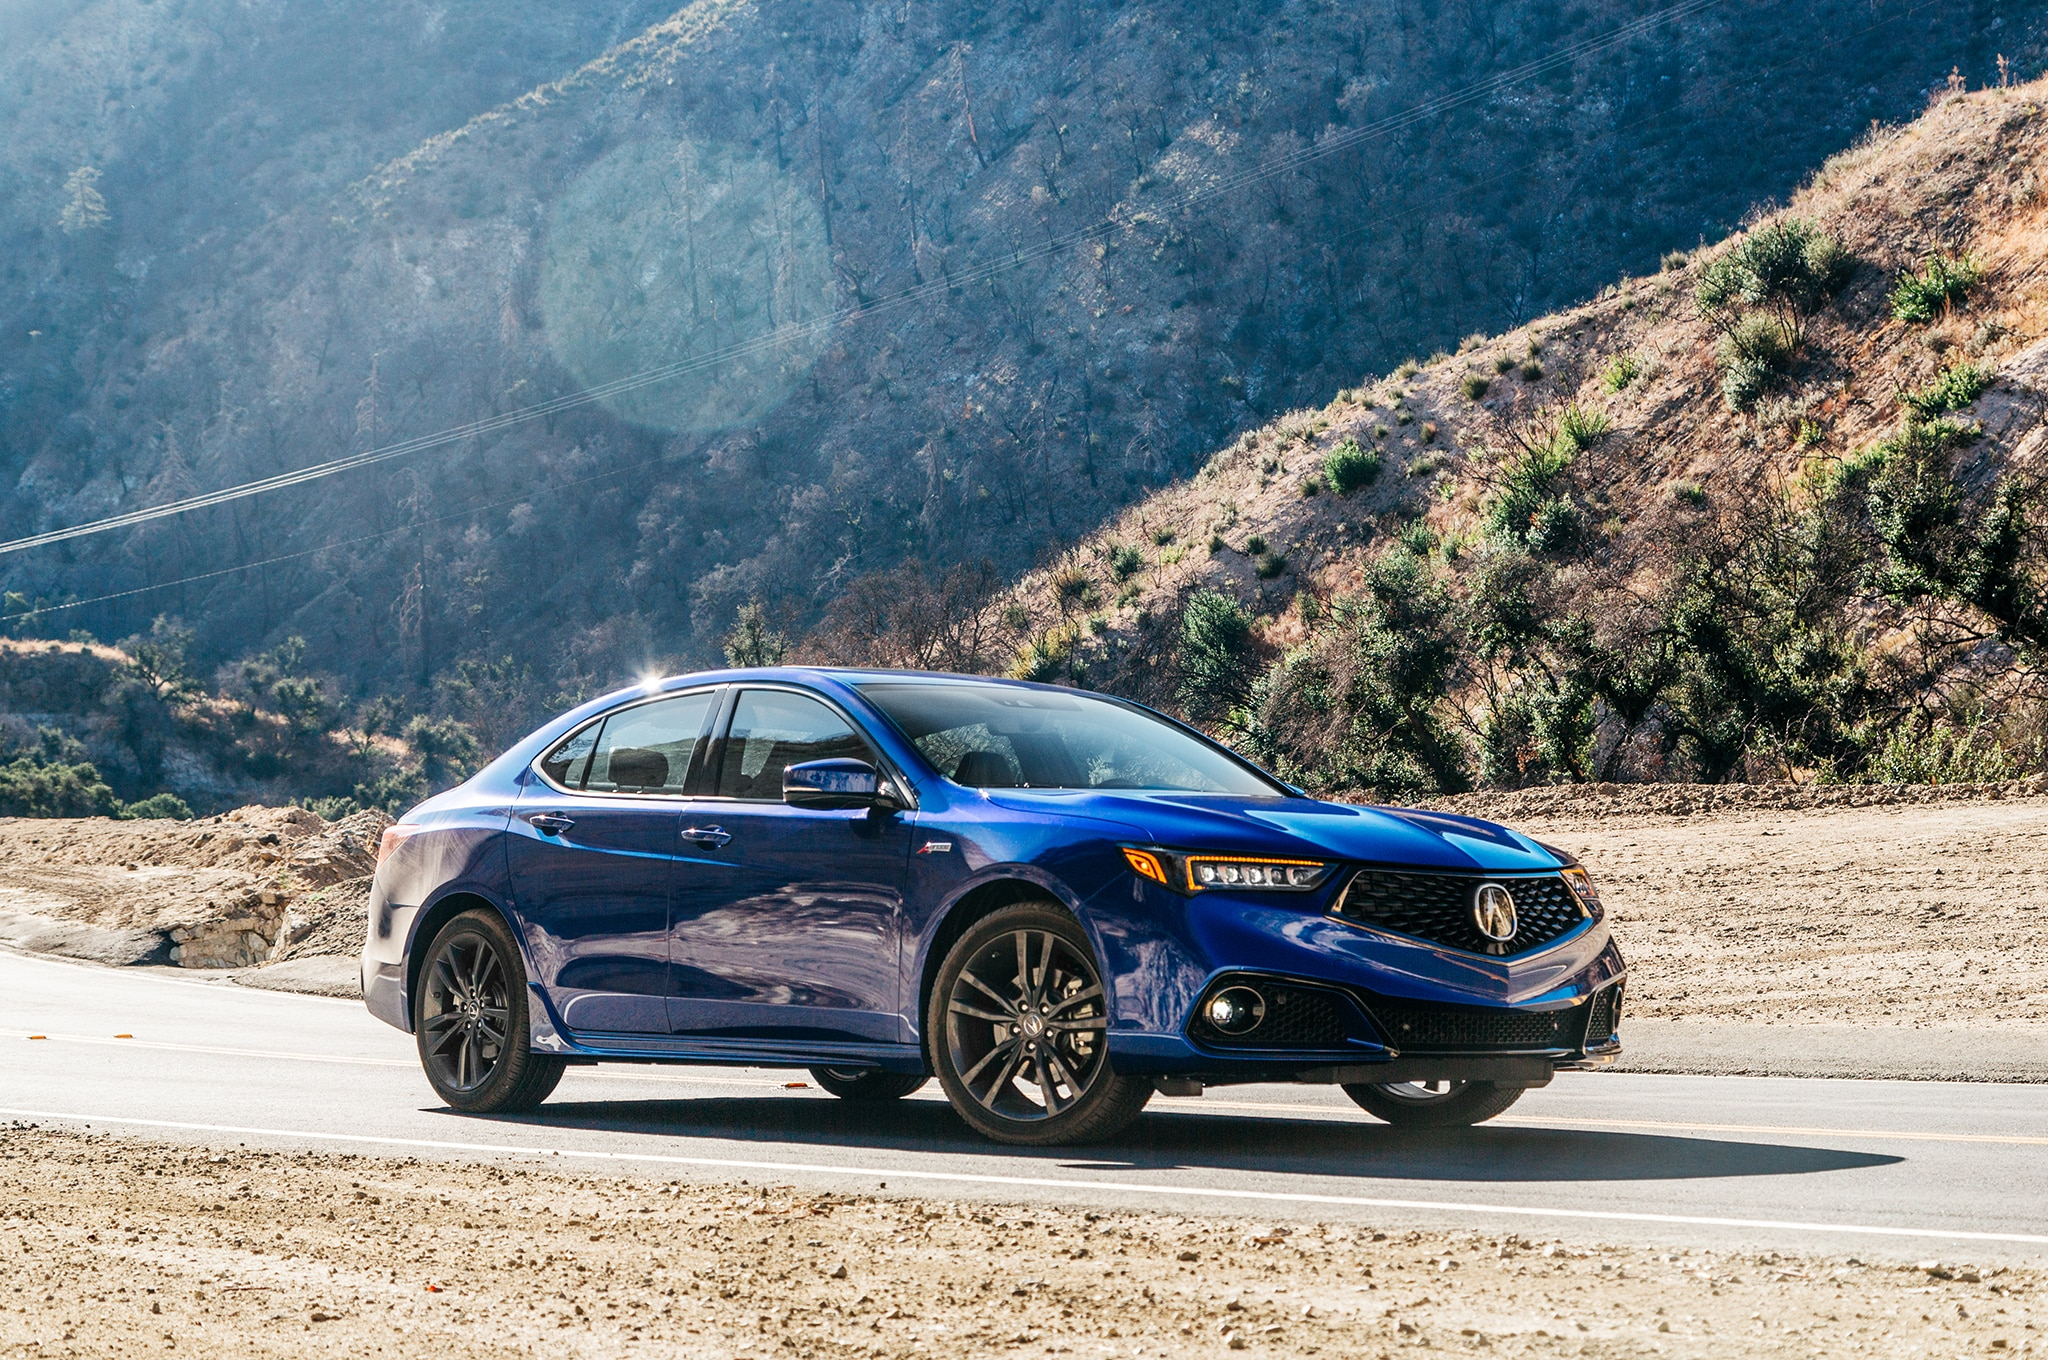 2018 Acura TLX SH-AWD A-Spec First Drive Review | Automobile